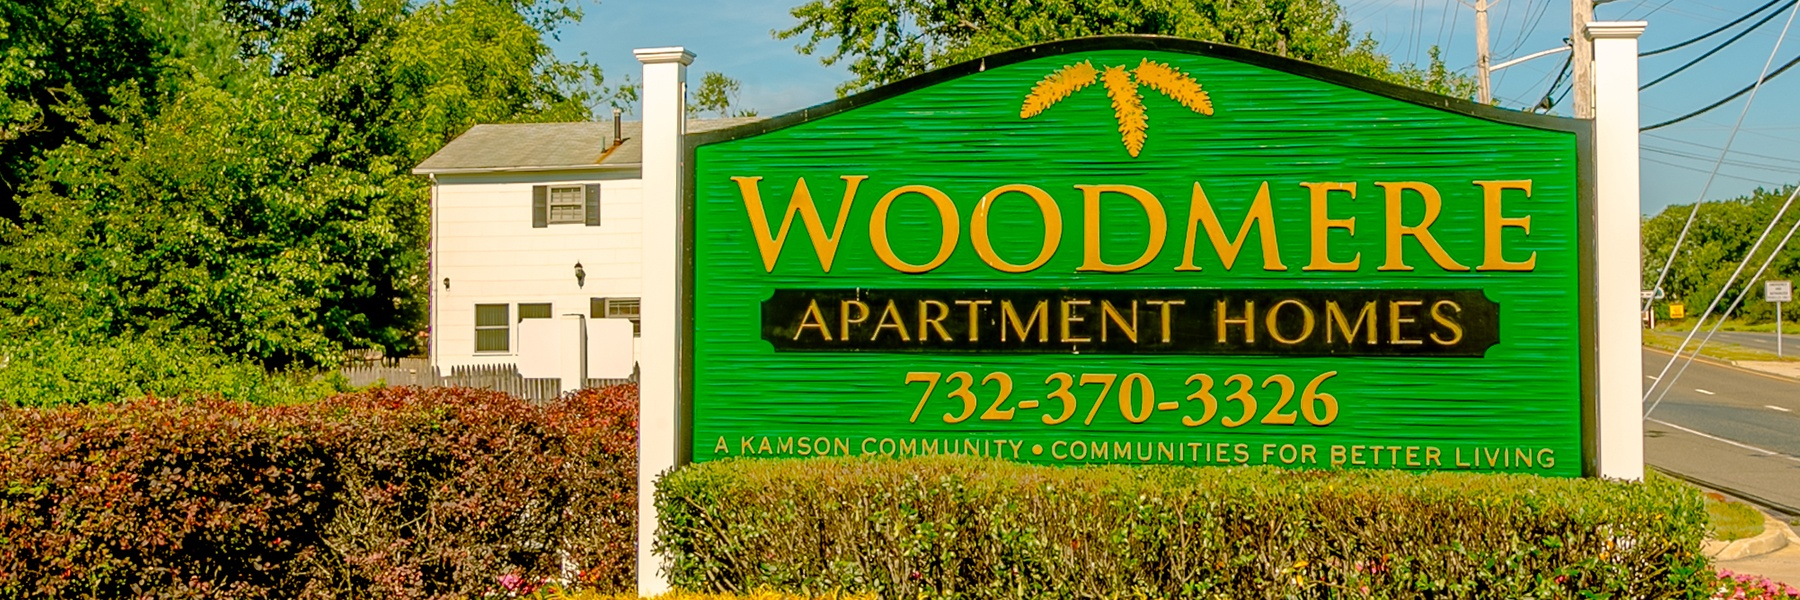 Woodmere Apartments entrance